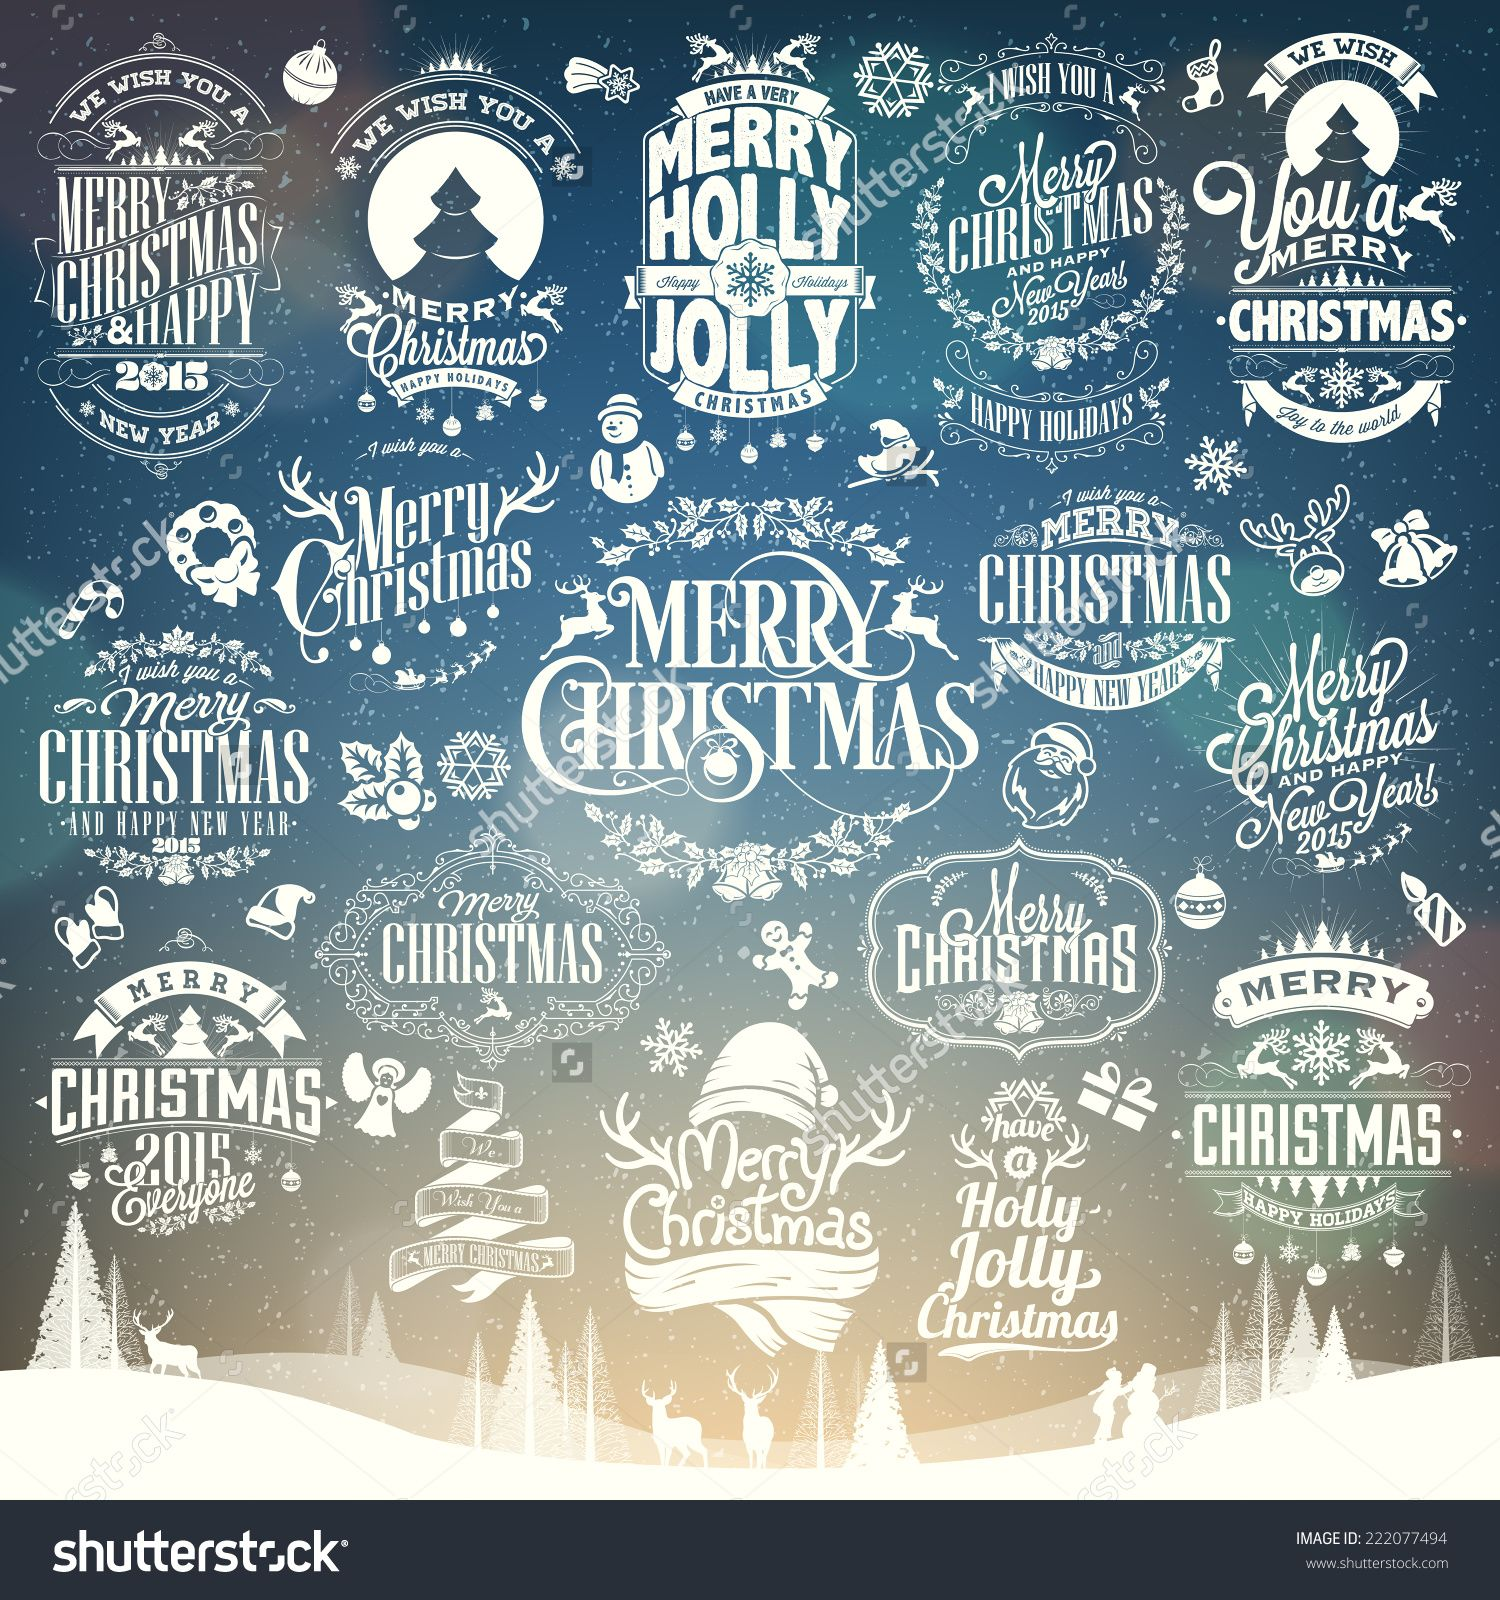 Hand Drawn Christmas And New Year Decoration Set Of Calligraphic And Typographic Design With Labels, Symbols And Icons Elements Stock Vector Illustration 222077494 : Shutterstock